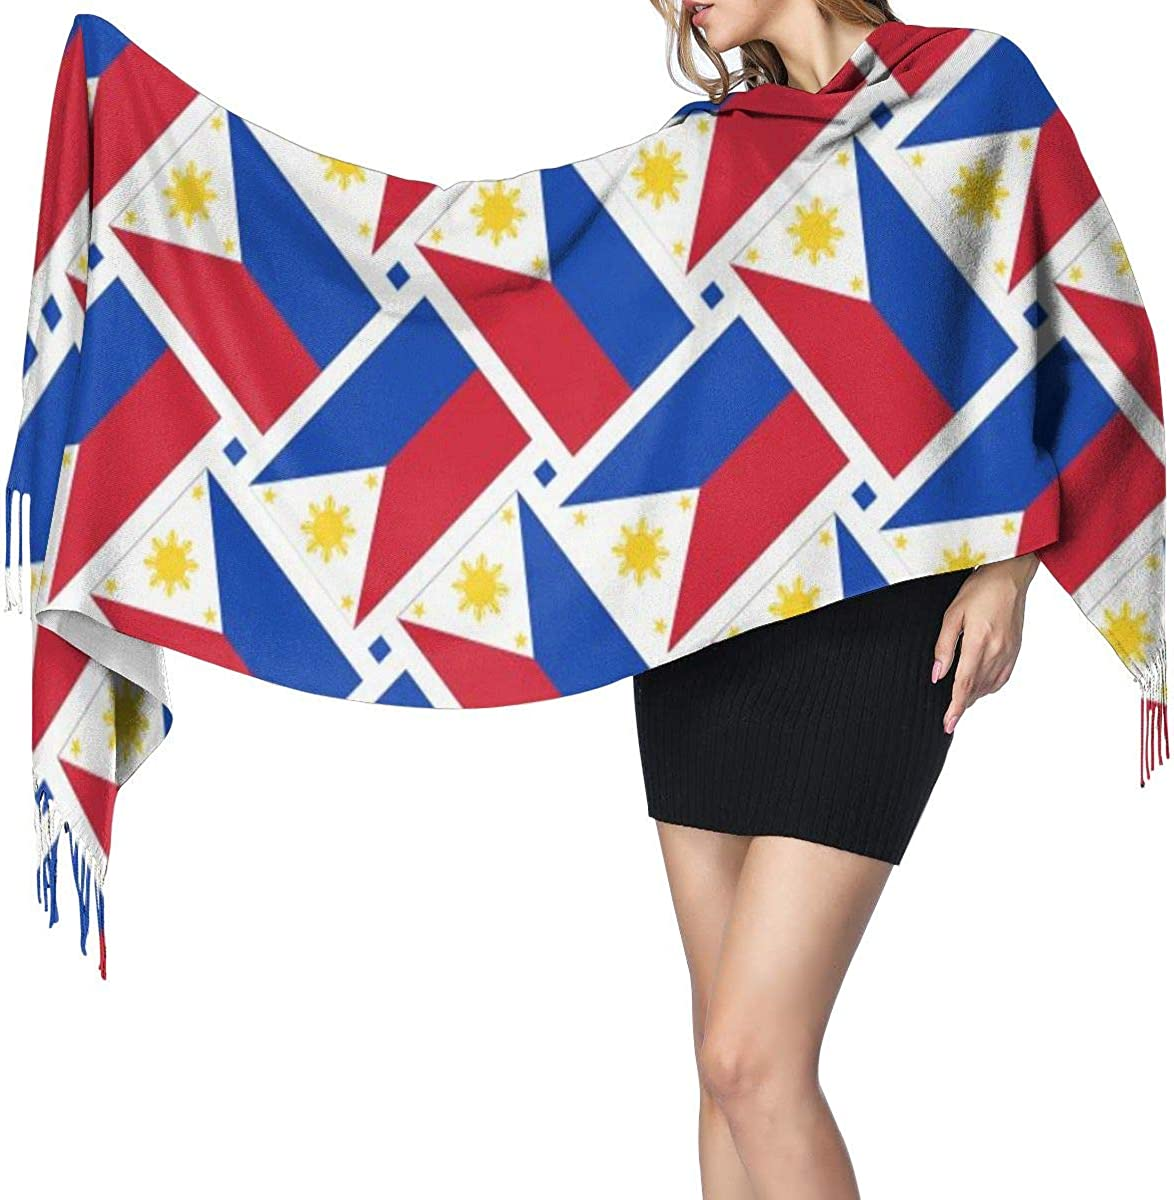 Philippines Flag Weave Women's Winter Warm Scarf Fashion Long Large Soft Cashmere Shawl Wrap Scarves